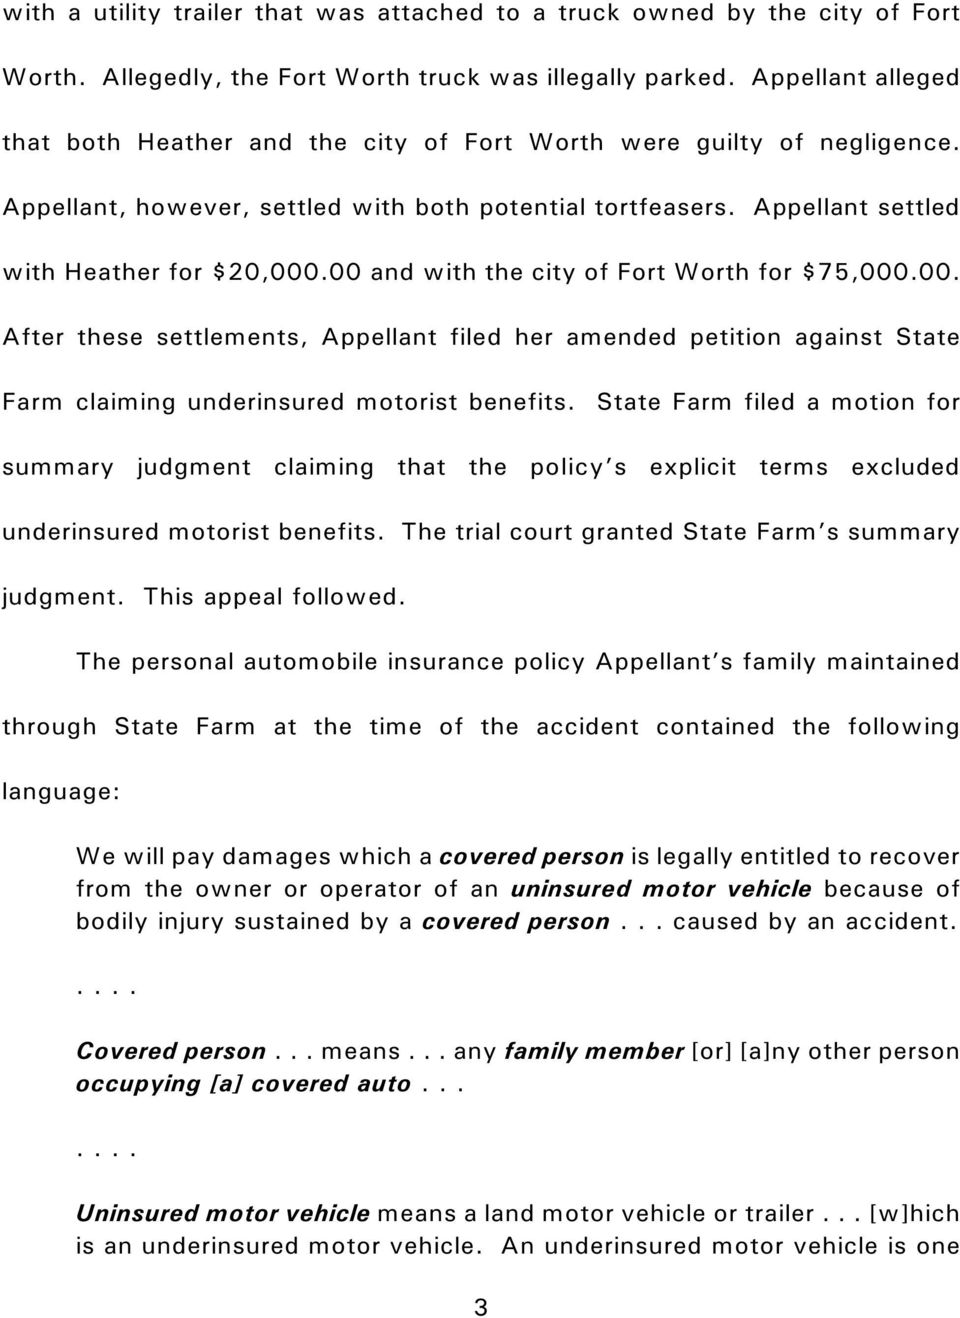 00 and with the city of Fort Worth for $75,000.00. After these settlements, Appellant filed her amended petition against State Farm claiming underinsured motorist benefits.